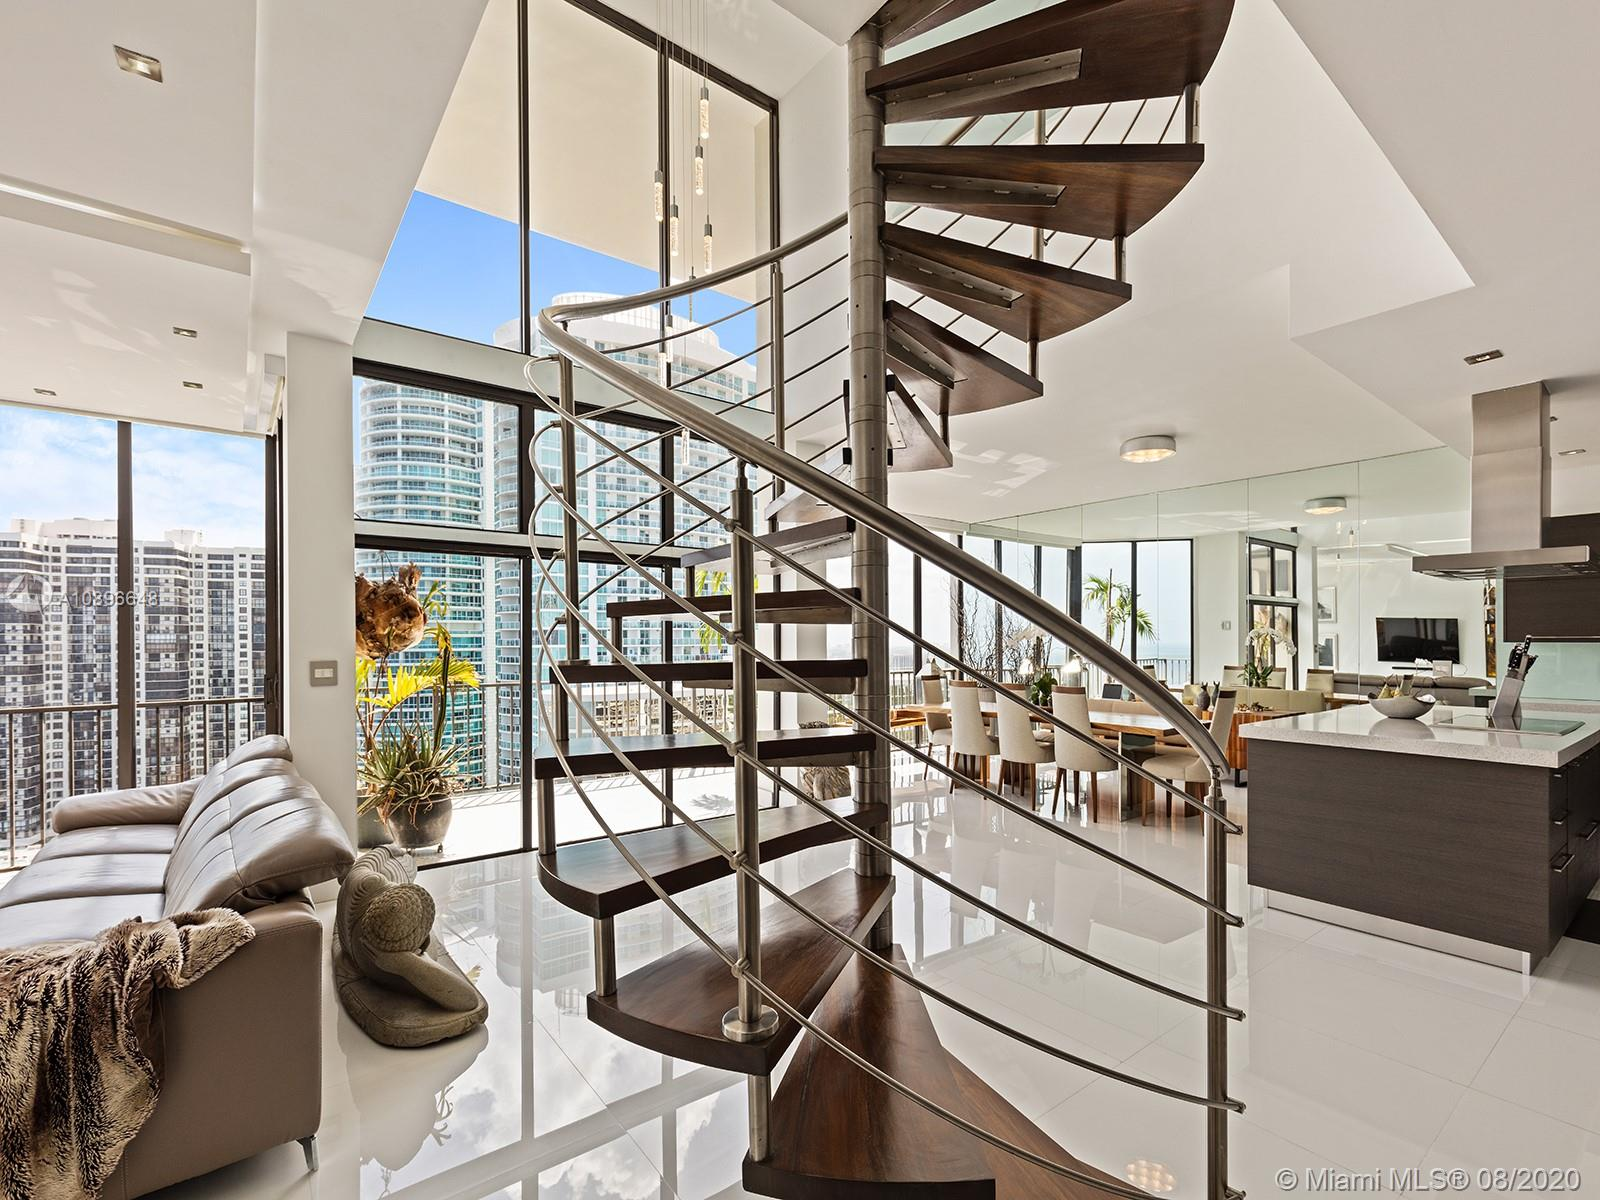 2 story Brickell PH with 22' ceilings with unobstructed wide views of the ocean, bay and city. An impressive custom stainless steel and mahogany circular staircase connects both floors. Custom curved wall and custom designer doors and closets. Open island kitchen is furnished with Thermador appliances to cook while viewing the entire bay. 2nd story marble suite overlooks the bay and allows you to soak in a Zen tub or enjoy the invigorating double rain shower with water views.  Pool, pool cabanas, Jacuzzi spa, kiddie pool, playground, tennis, racquet & basketball courts, exercise room, party rooms, marina and a wonderful BBQ area on the water's edge. Owner owns two slips that are